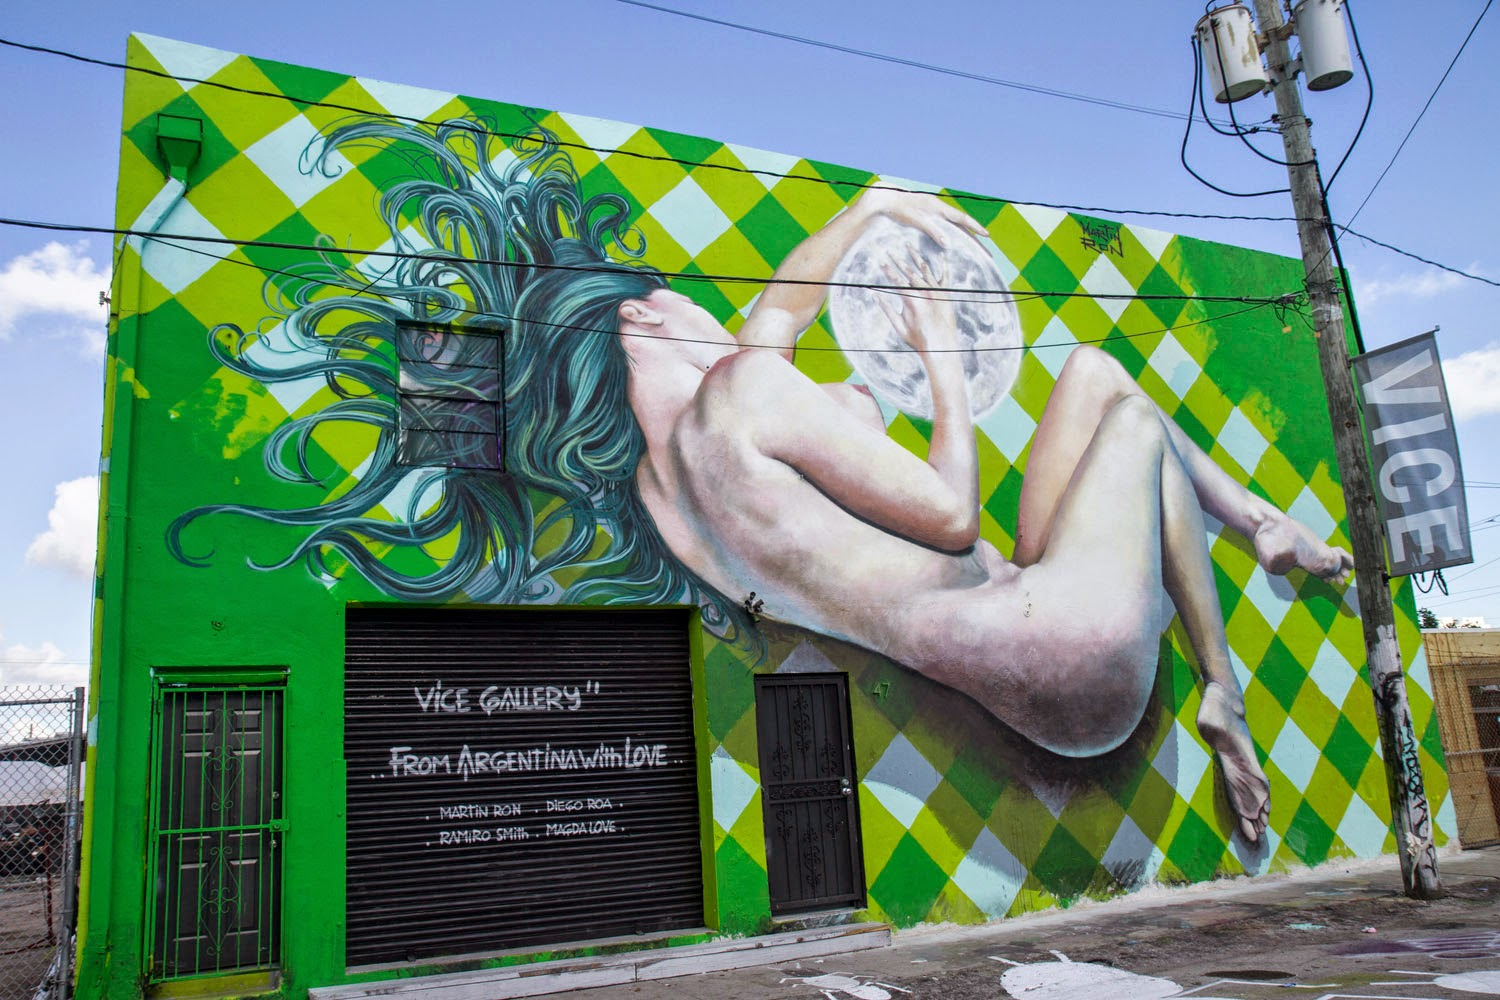 Coming straight from South America, Martin Ron was also in Miami where he was invited by Vice Gallery to paint a new piece in the district of Wynwood.